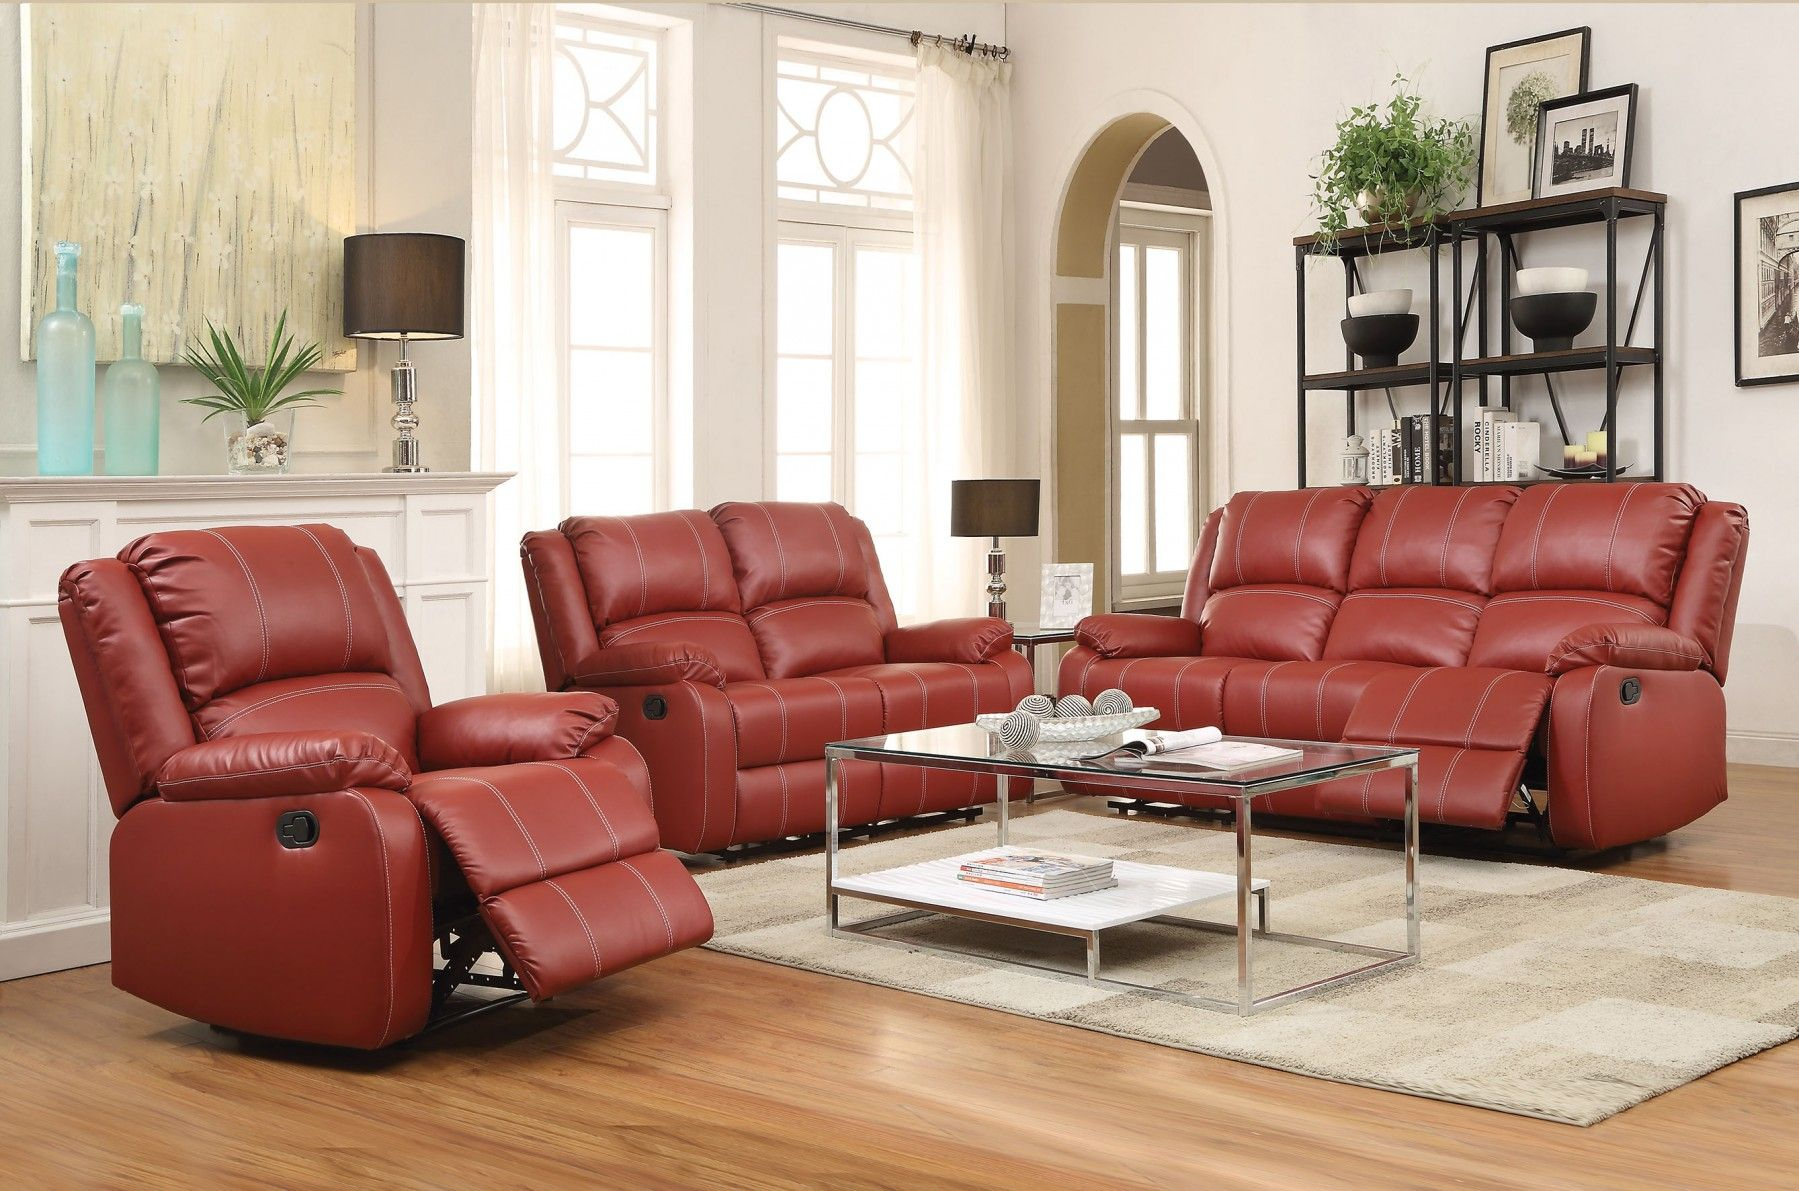 White leather sofa sets online in Wylie Texas